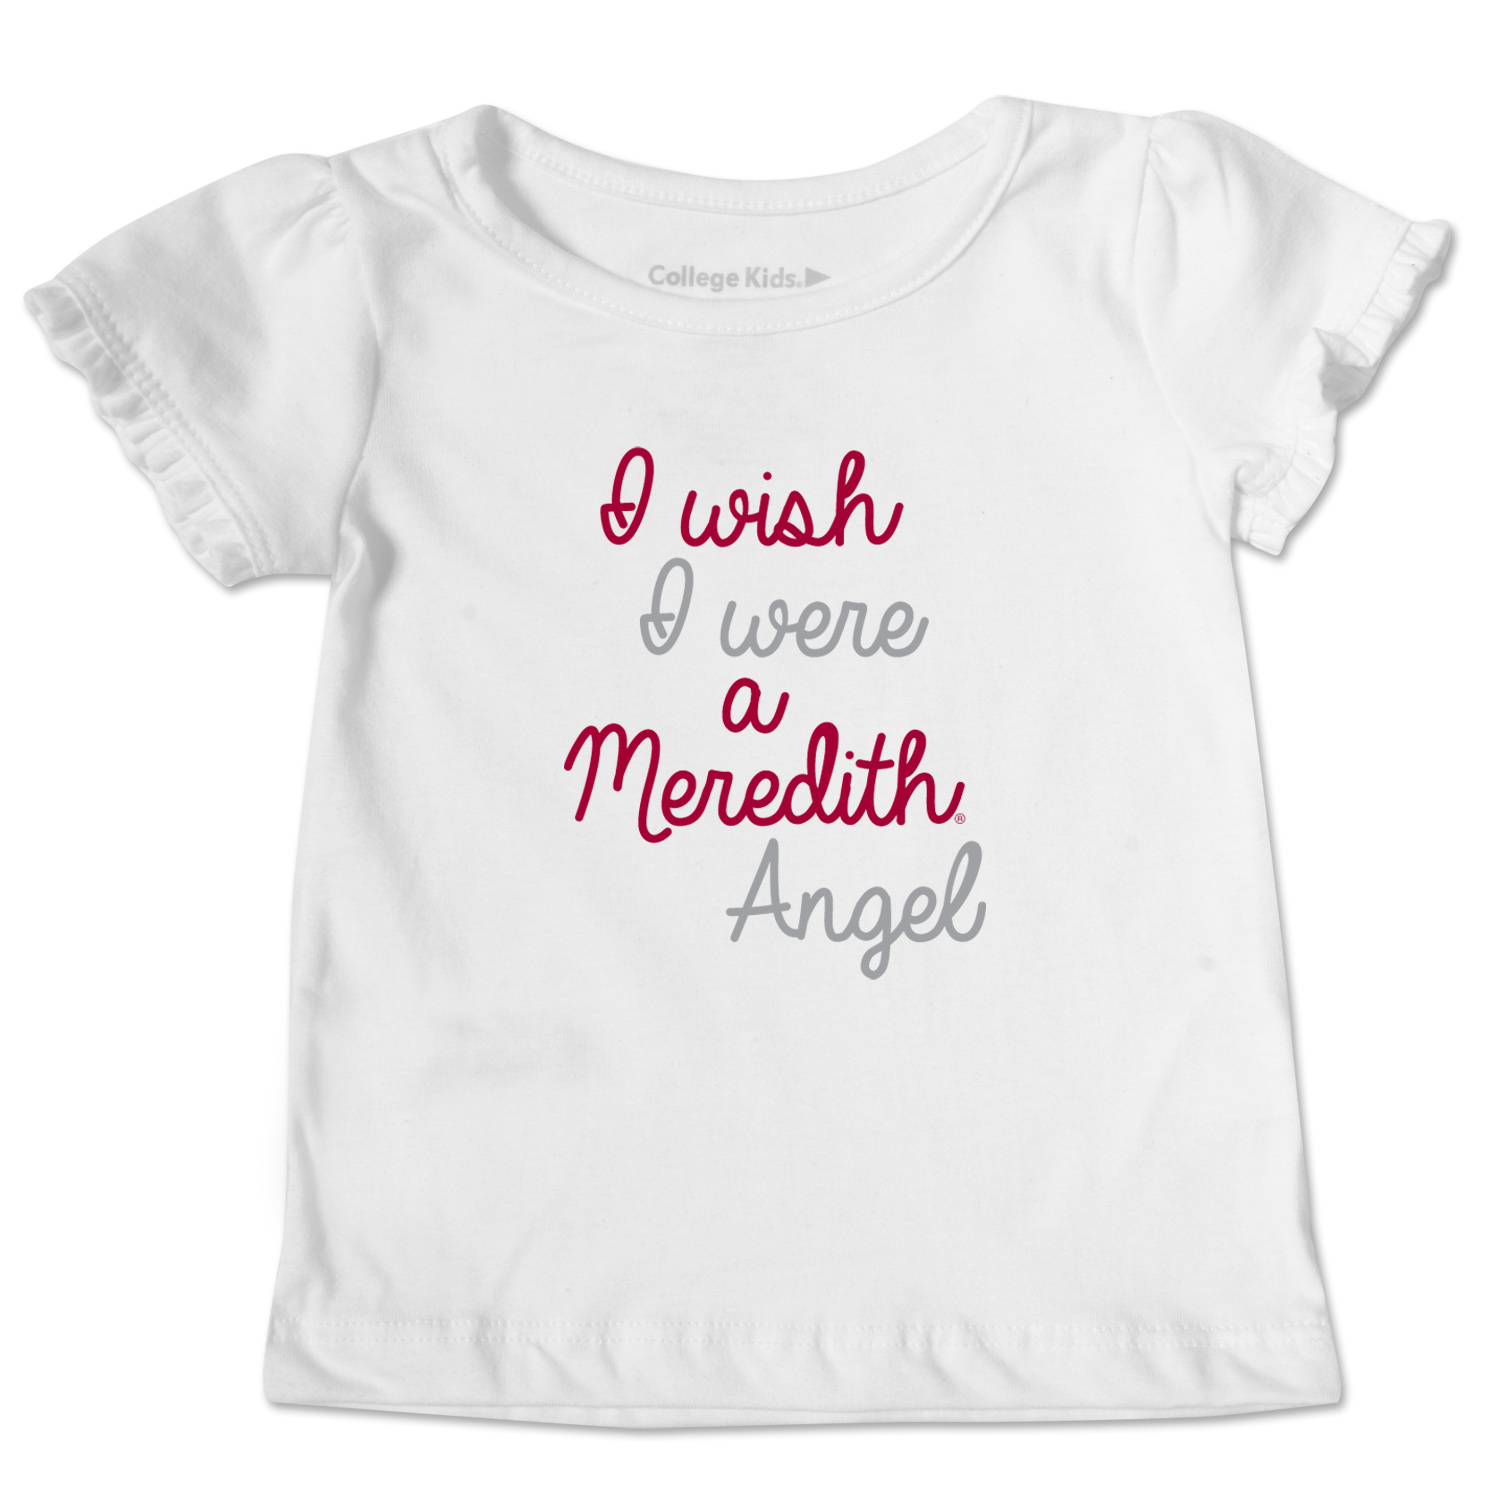 Image for the Toddler Ruffle Tee White I wish I were a Meredith Angel product